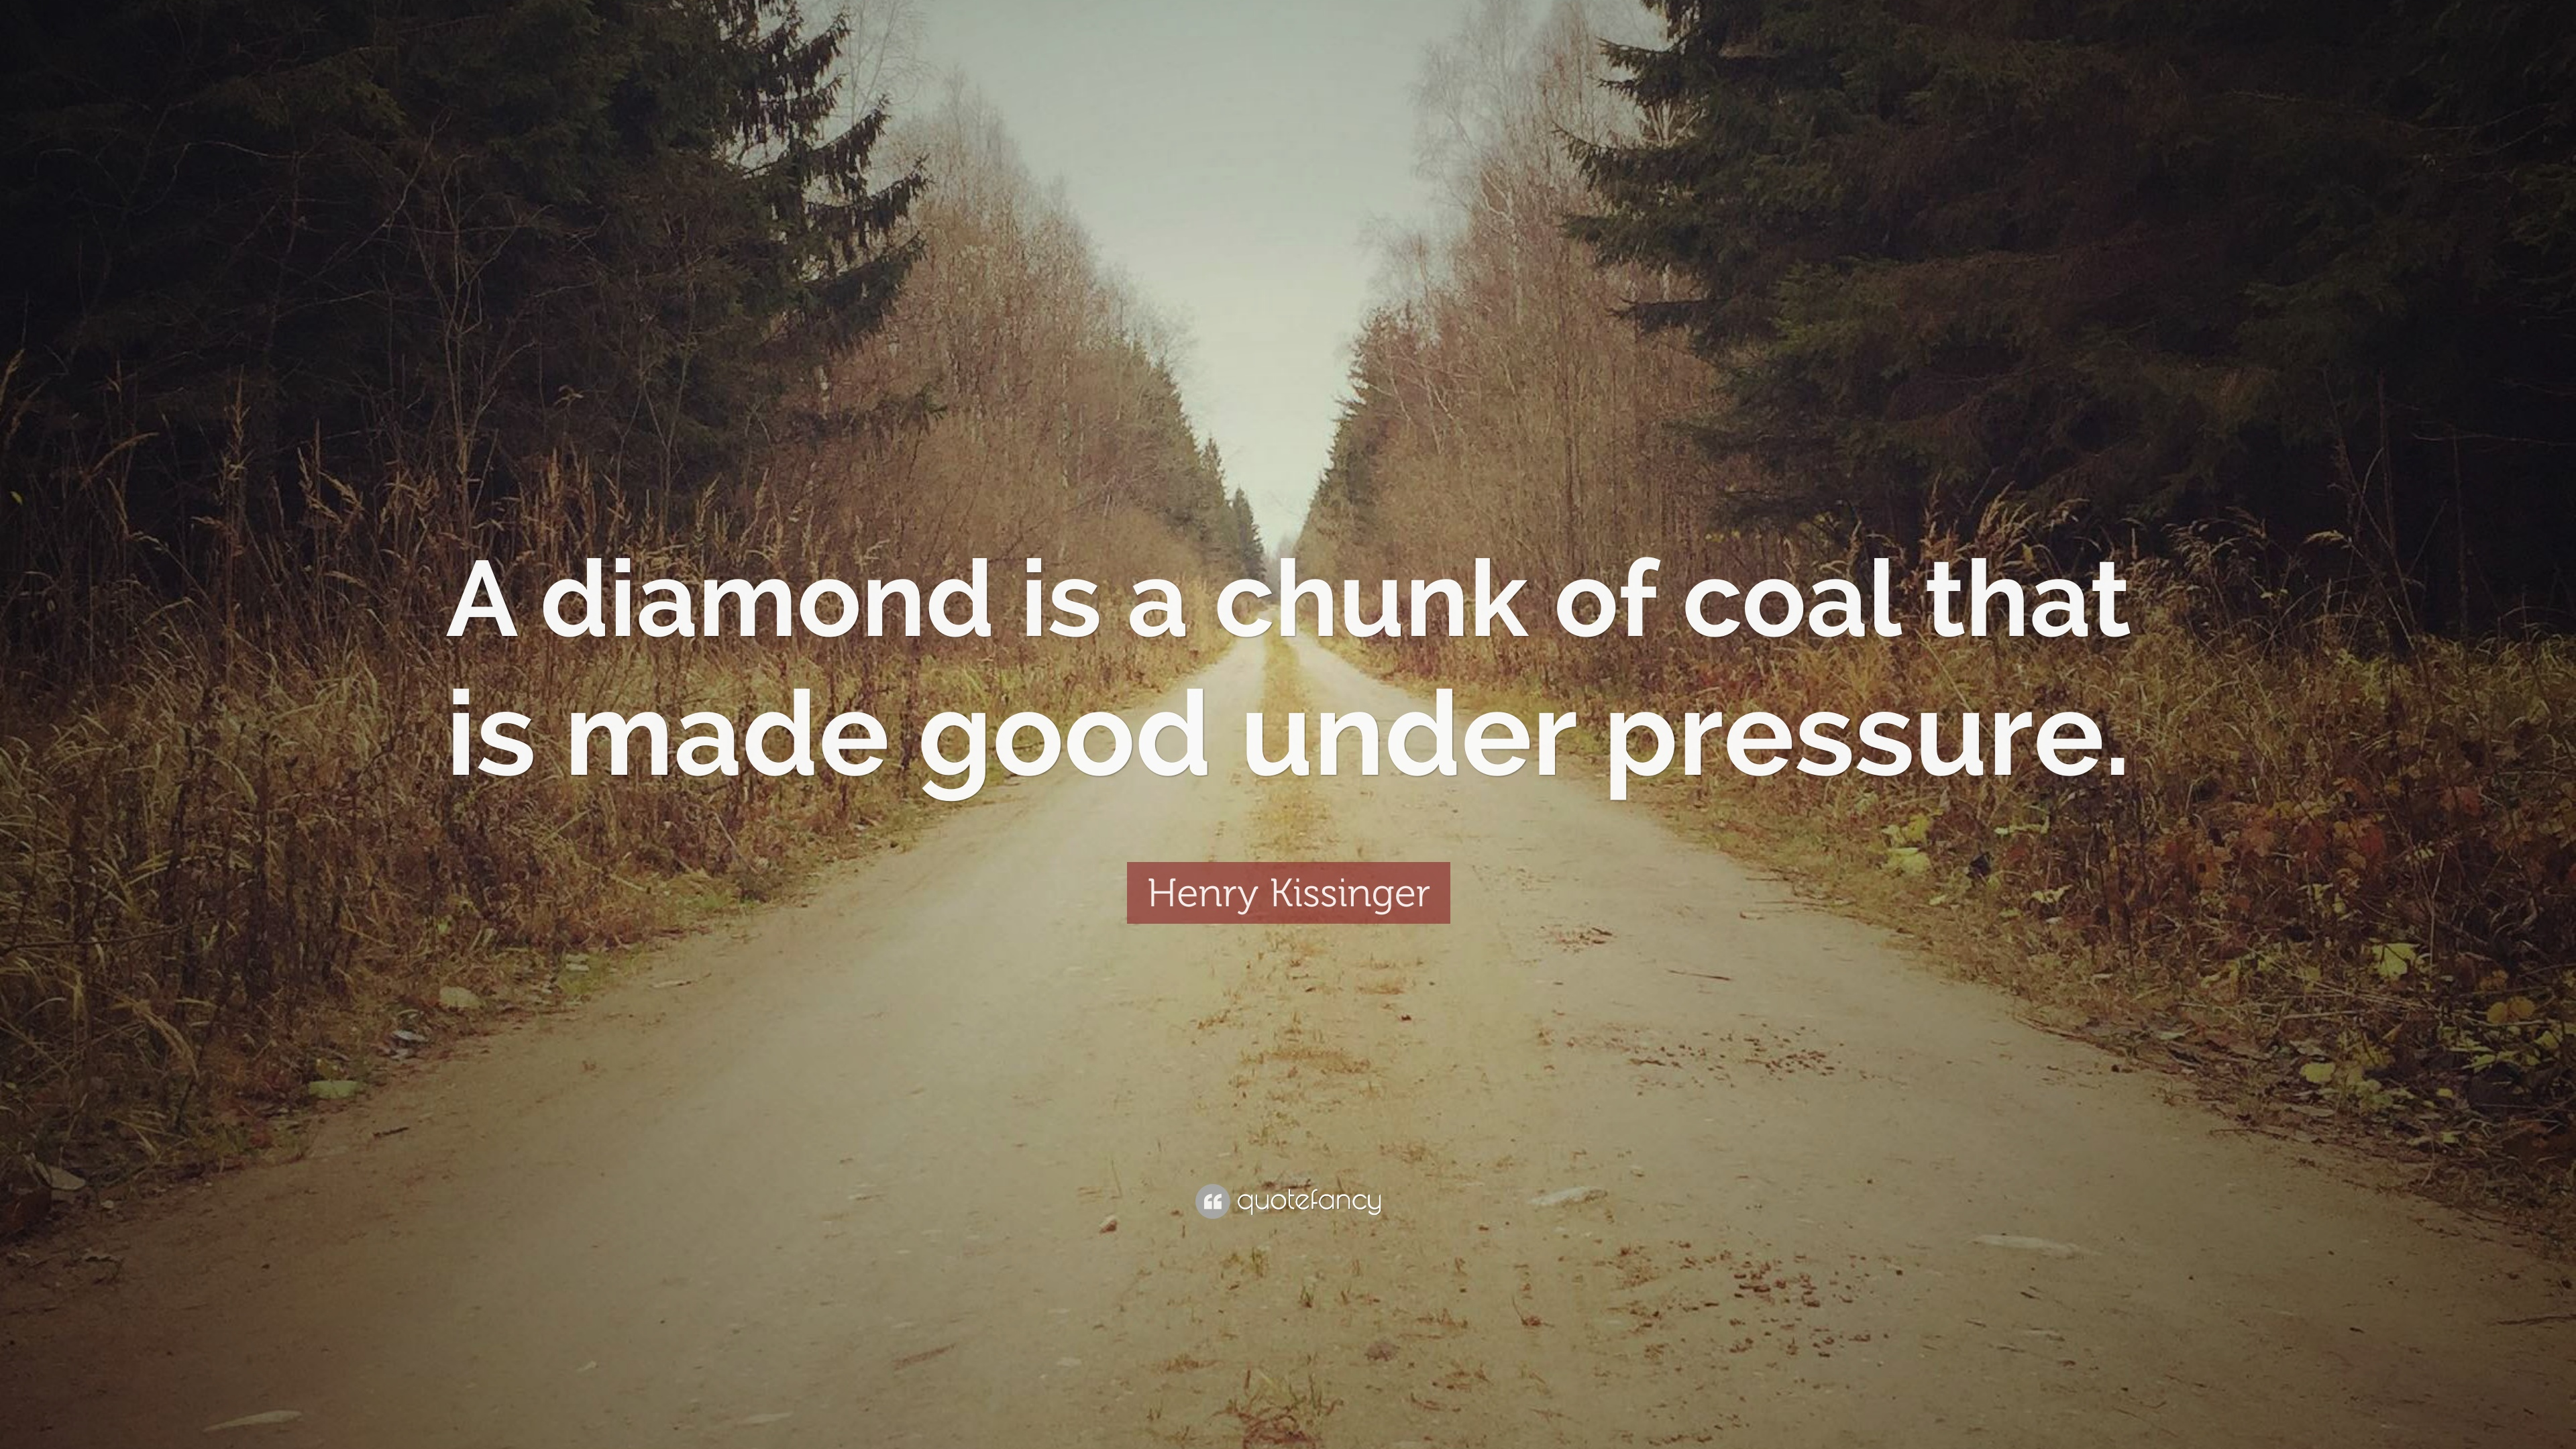 the to coal stuck of quote a thomas piece edison is diamond job that